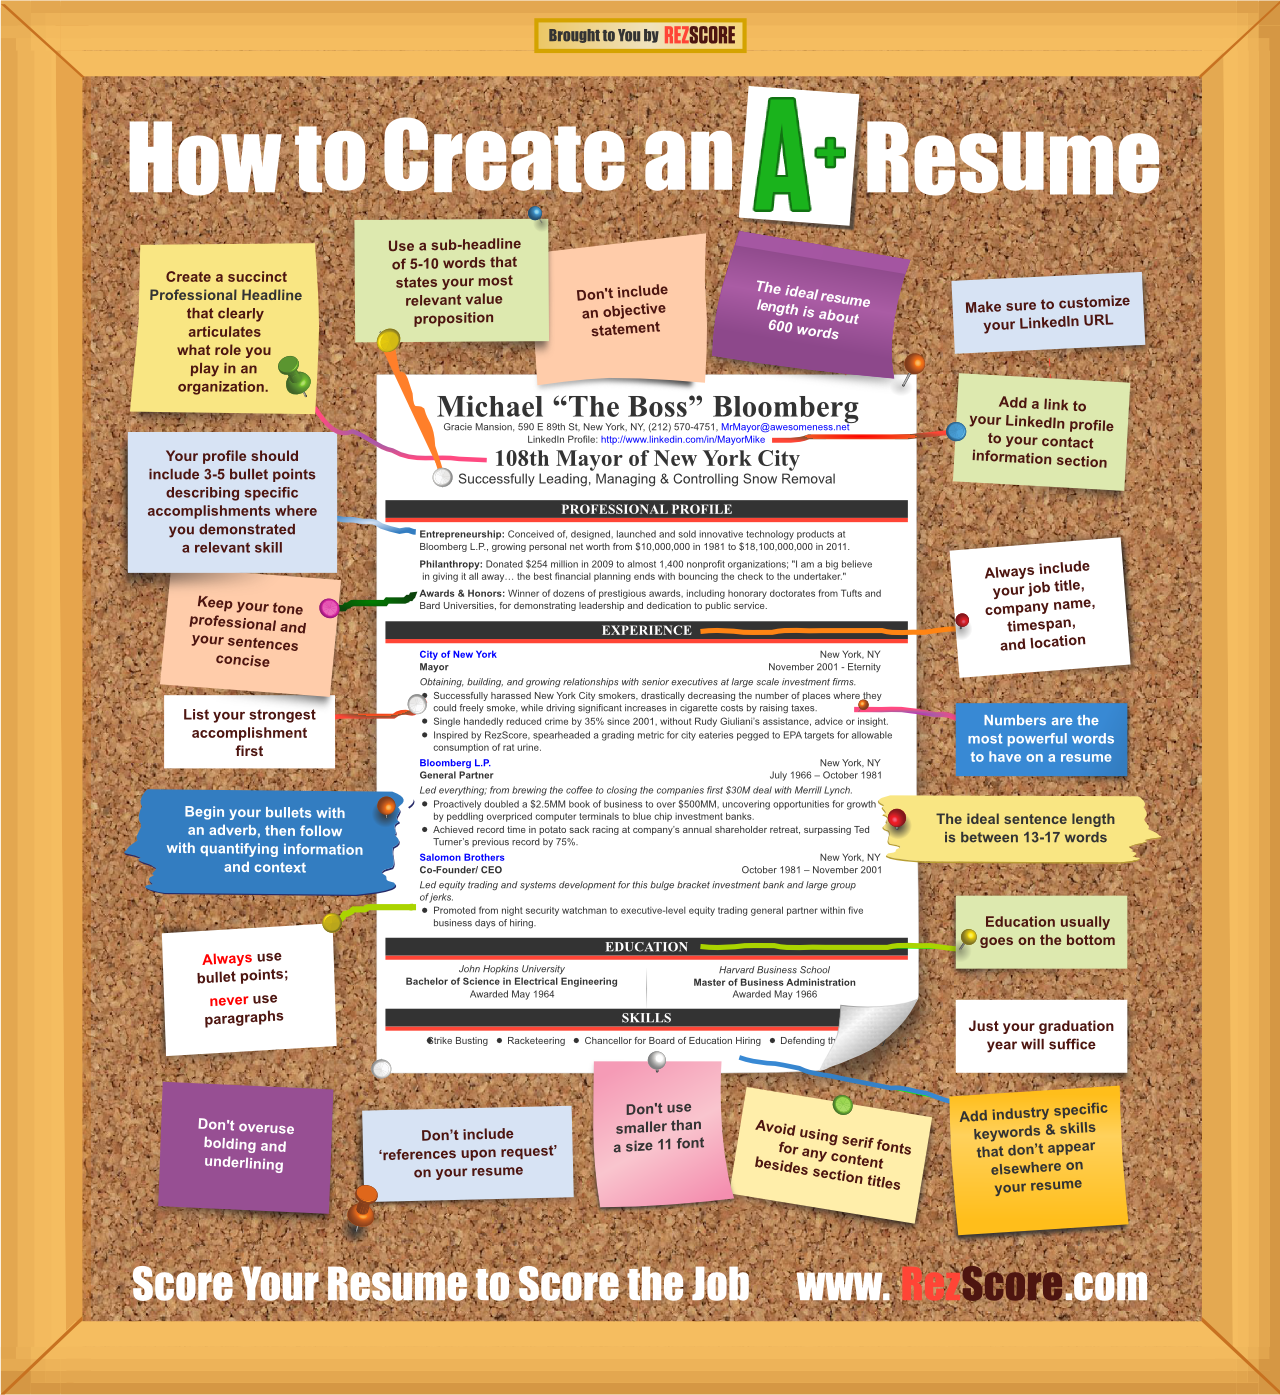 How To Create An A Resume Resume Job Career Career